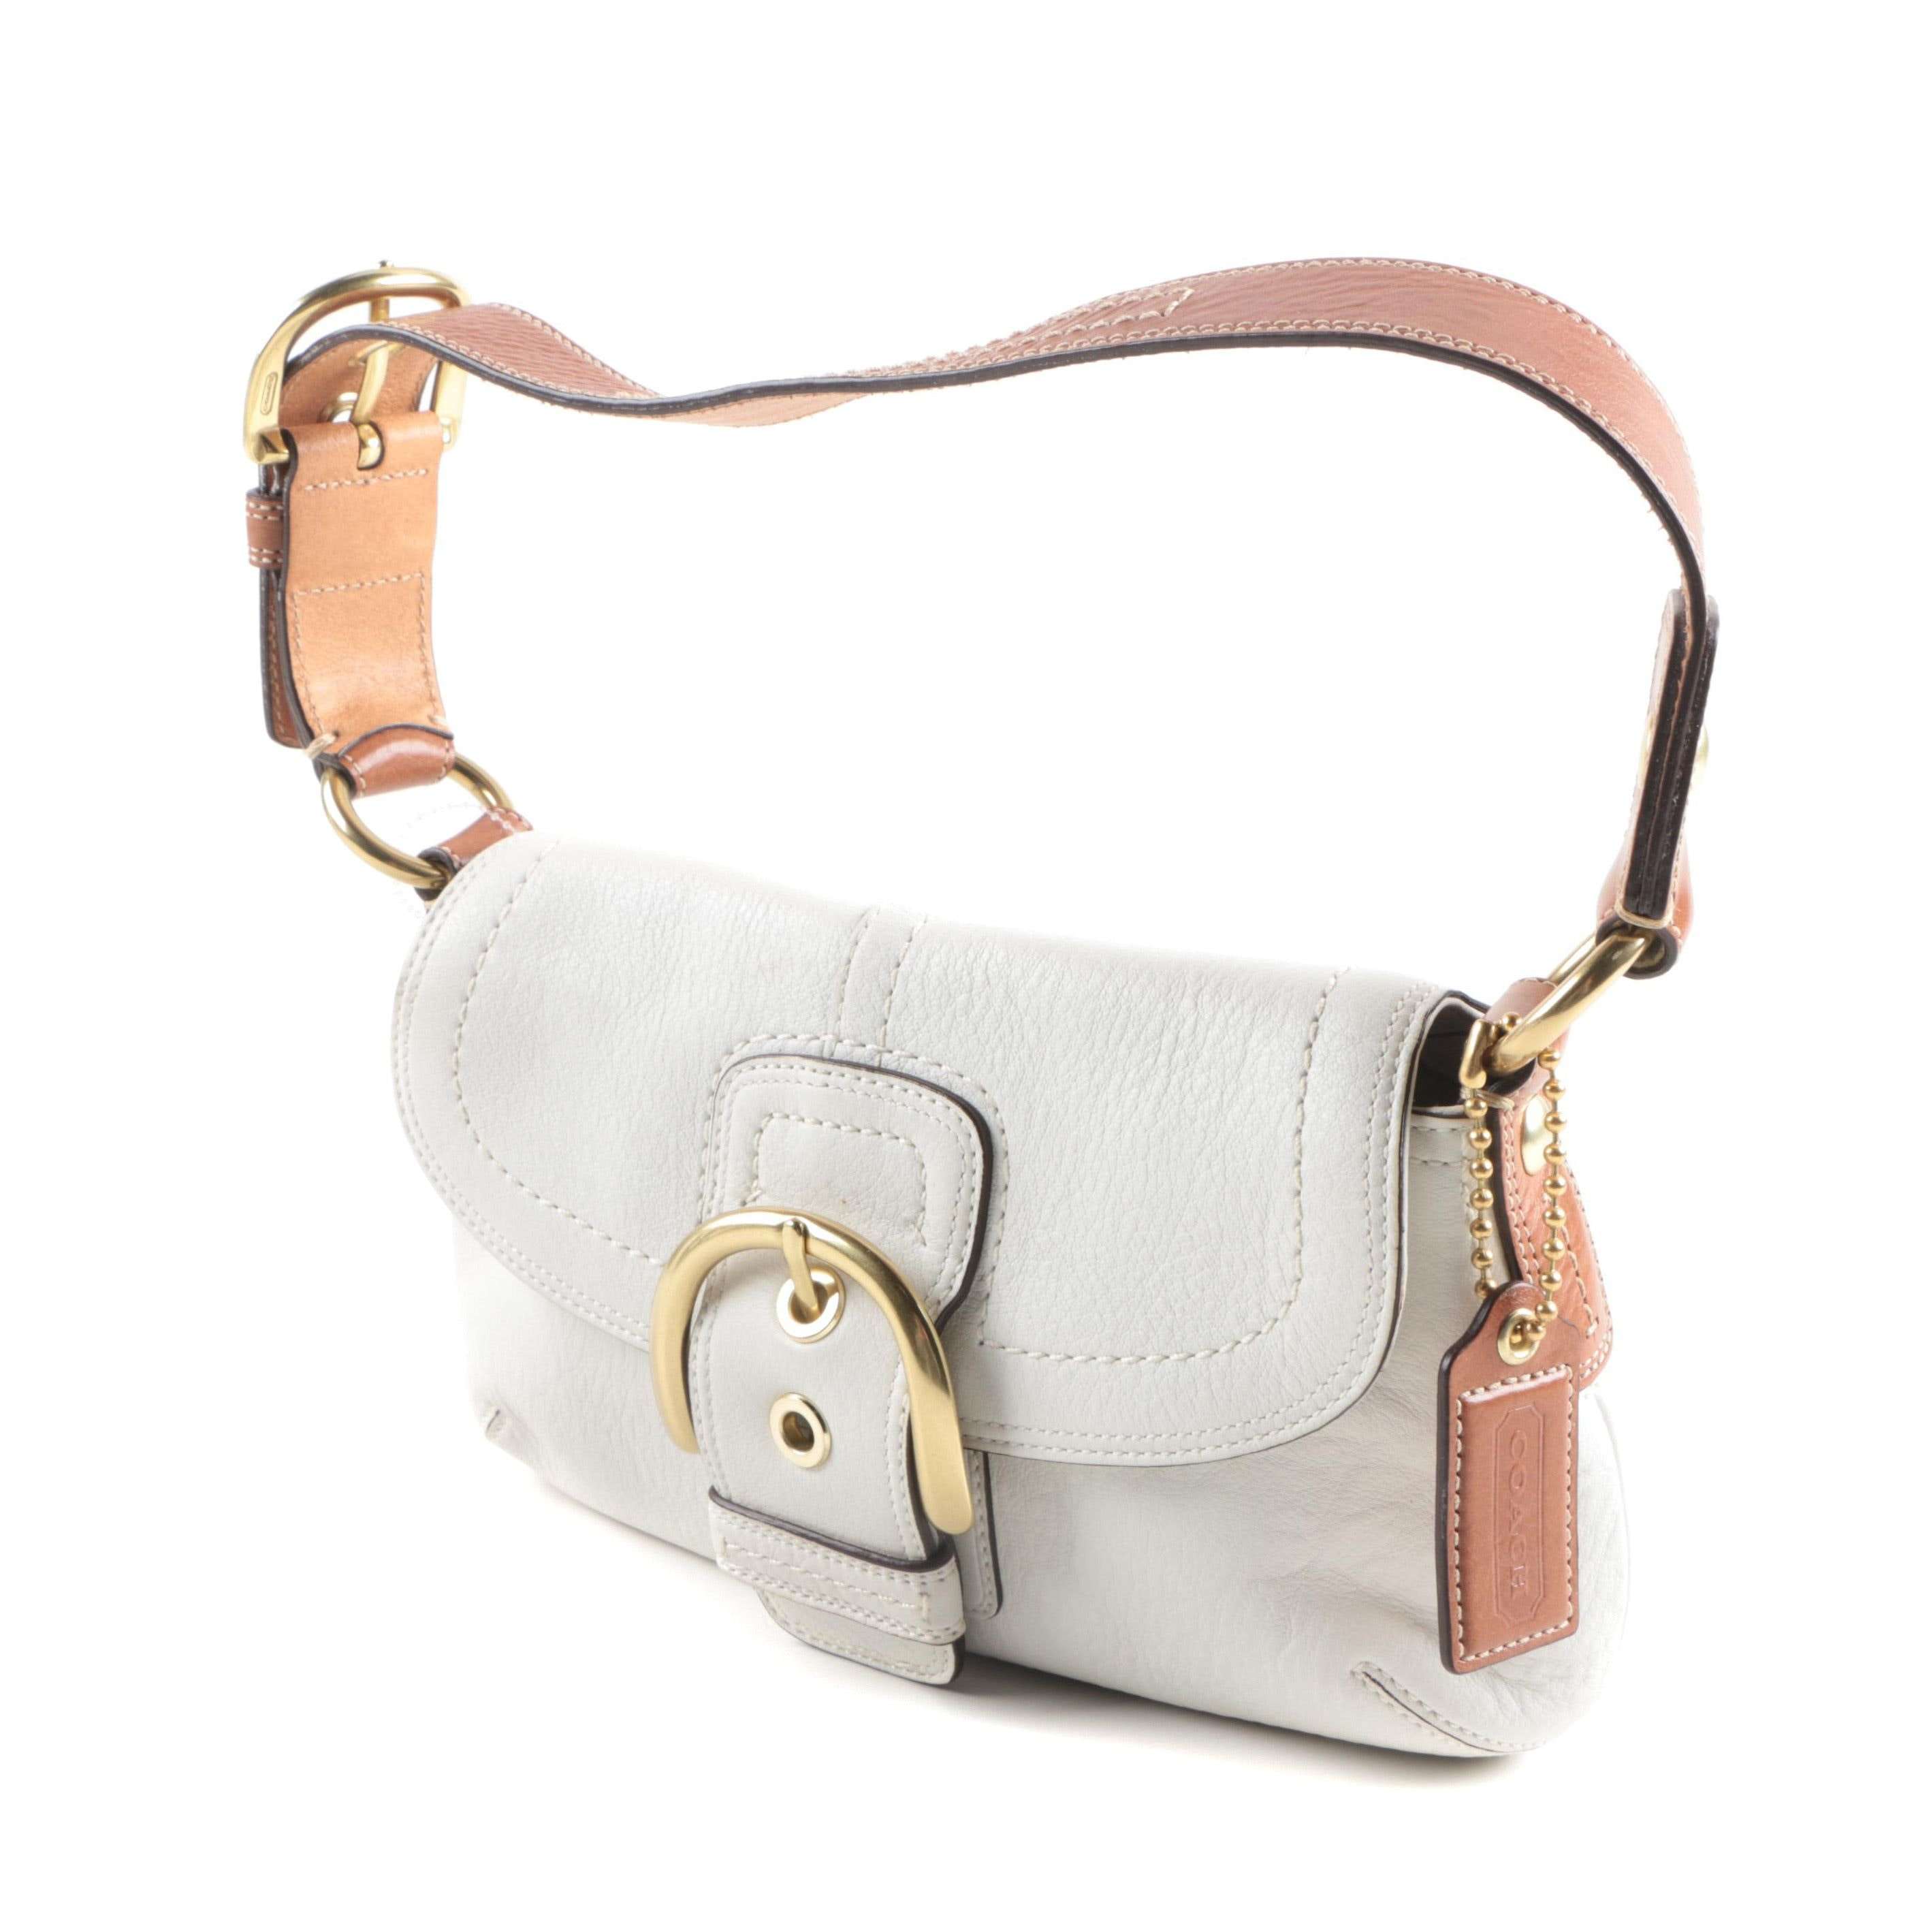 Coach Leather Soho Flap Shoulder Bag